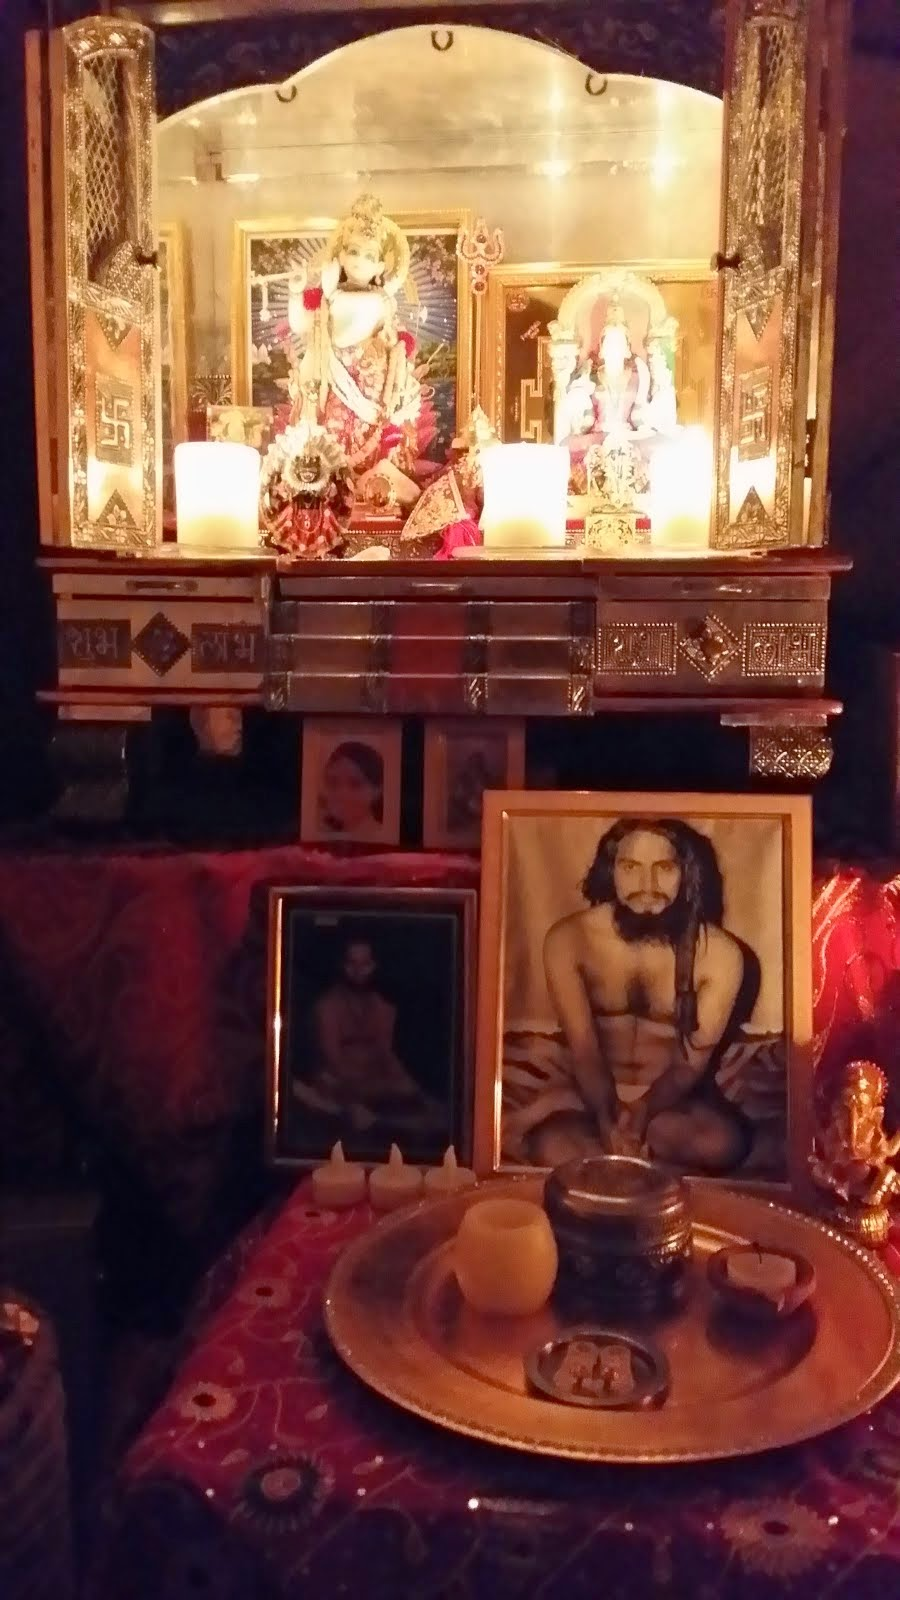 Blazing Murtis in Puja room